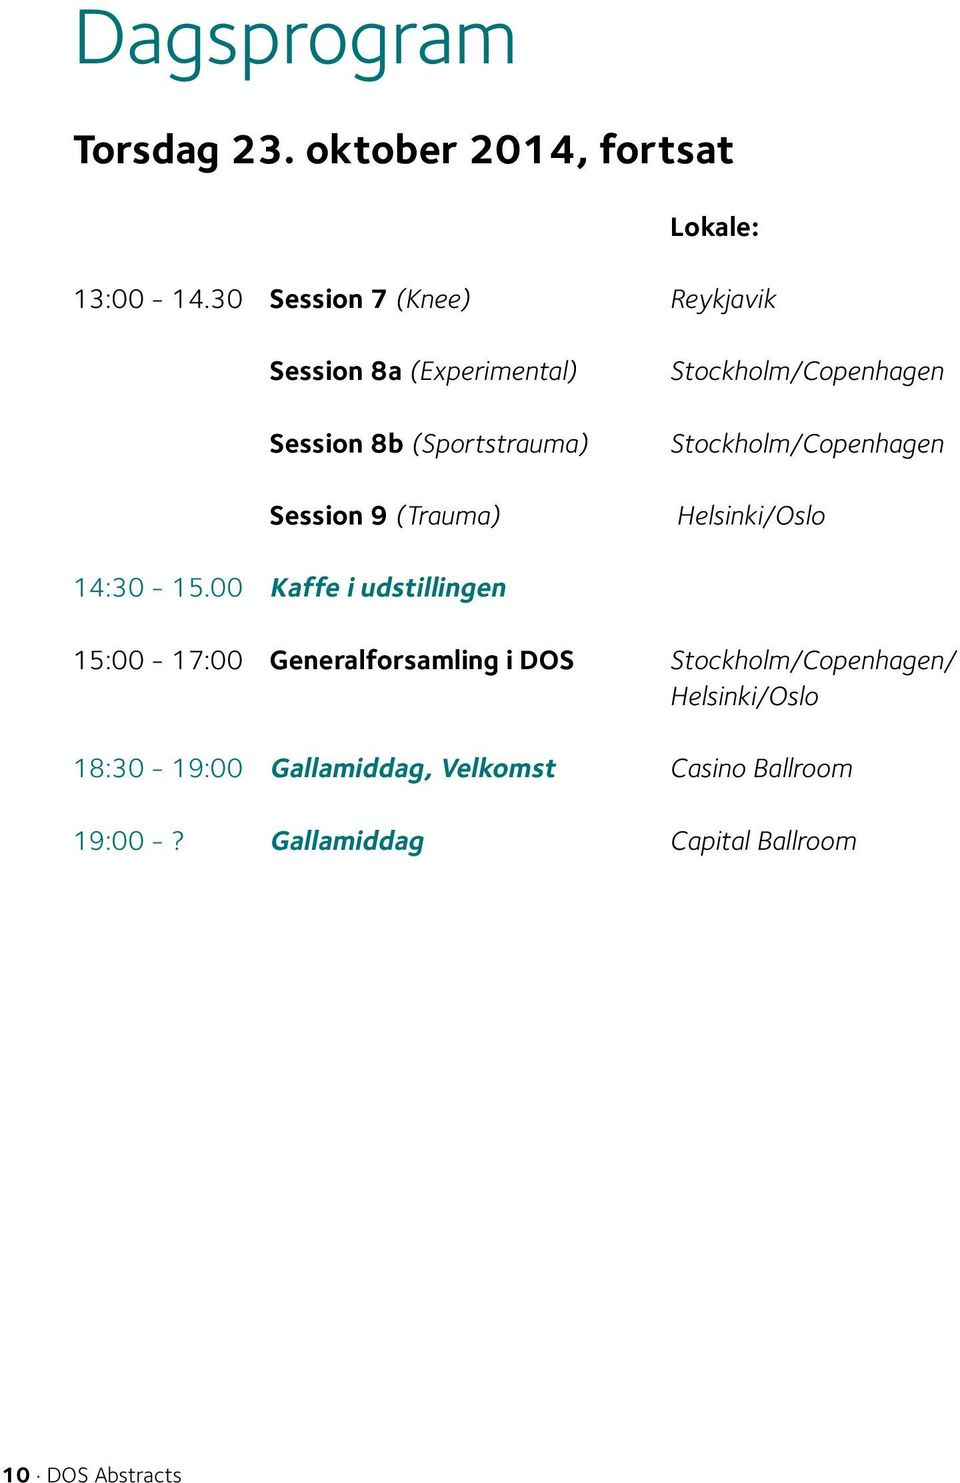 8a 7 (Spine) Status (Experimental) and perspectives Stockholm/Copenhagen Session 8 (Pediatrics) Helsinki/Oslo 08:30-09:30 DOS Session Symposium 8b (Sportstrauma) (uddannelse): Stockholm/Copenhagen